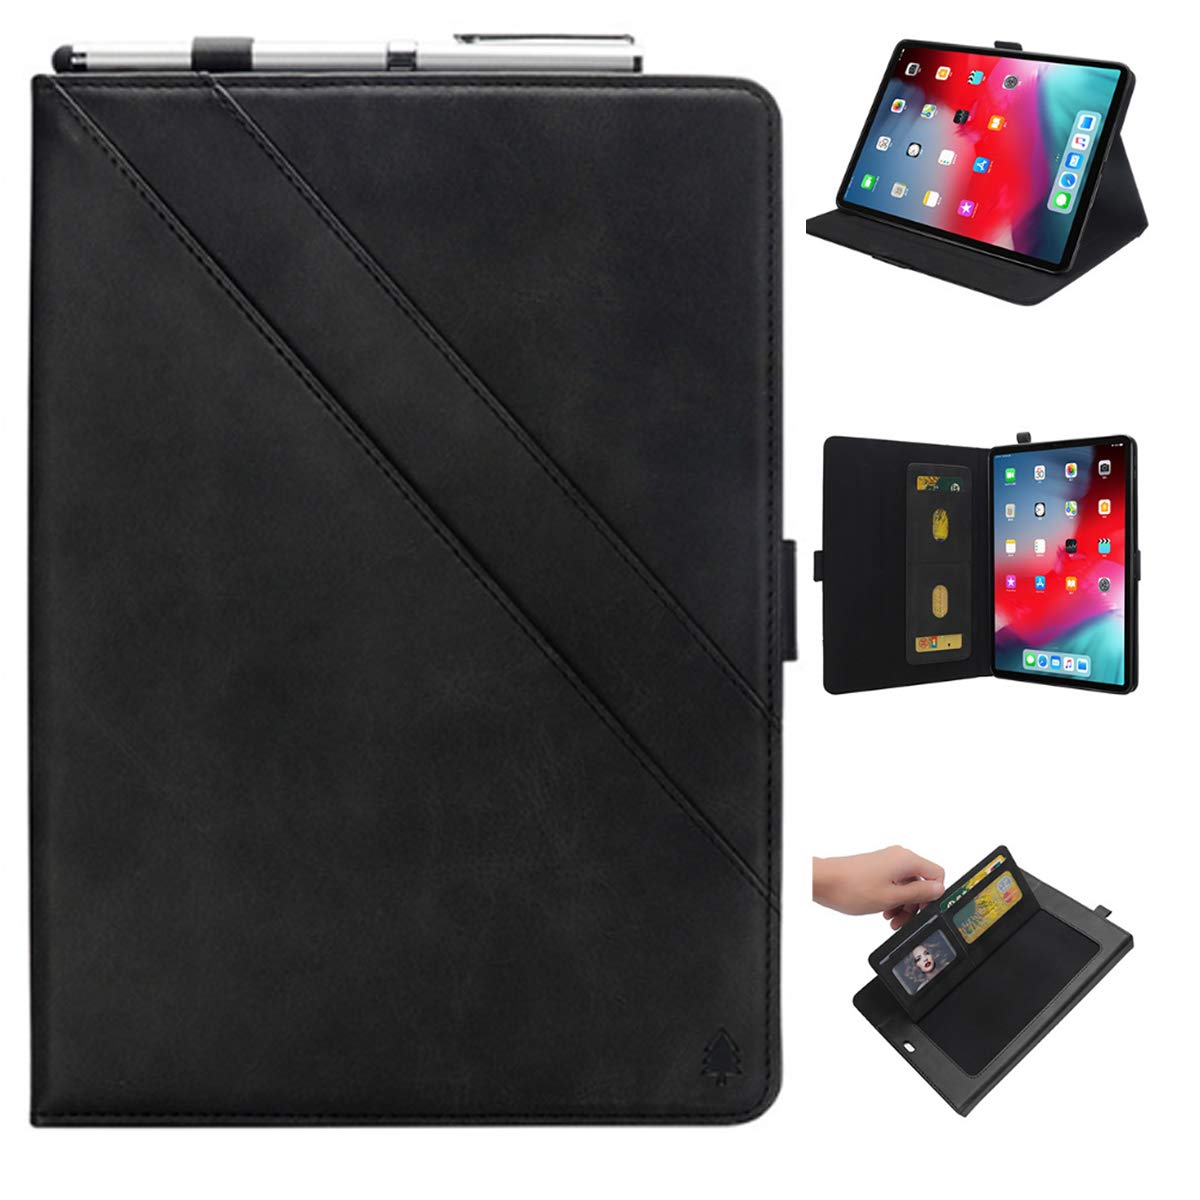 KATEGY iPad Pro 11 Inch Case with Pencil Holder, Premium PU Leather Folio Case with Apple Pencil Strap Holder and Card Slots Magnetic Smart Case Cover for iPad Pro 11 inch 2018 Release - Black